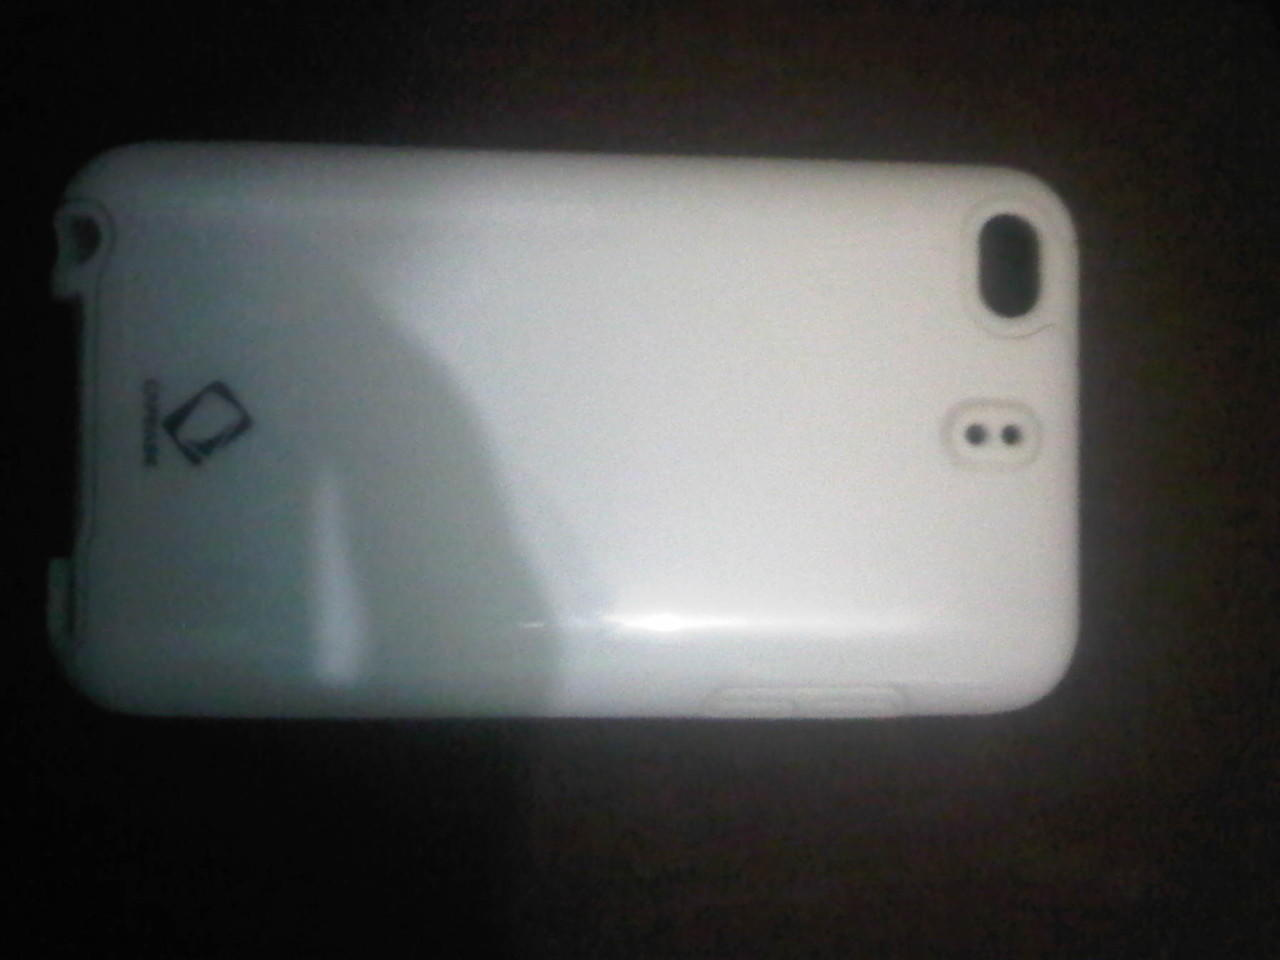 [WTS] [Second] IPOD Touch - ITouch 4th Gen 32GB, Putih, Mules, Lengkap.